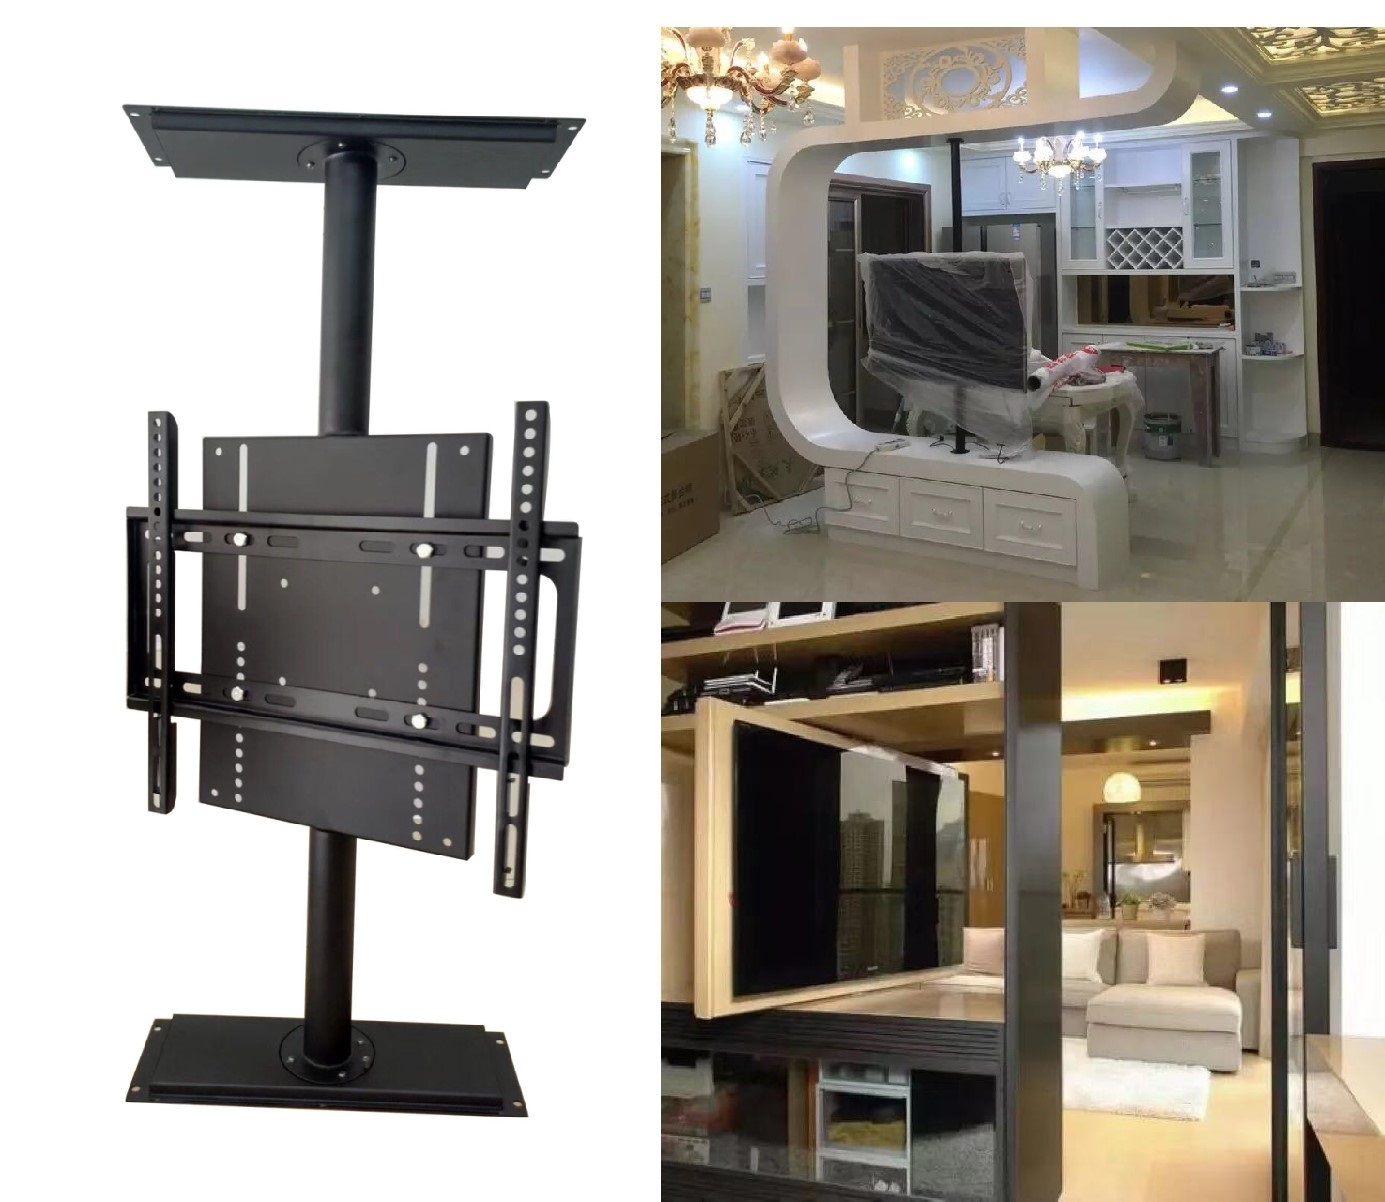 Kinbay Di Bawah Kabinet TV Mengangkat dengan Remote Control TV Stand Lift Vertikal Pop-Up TV-Lift